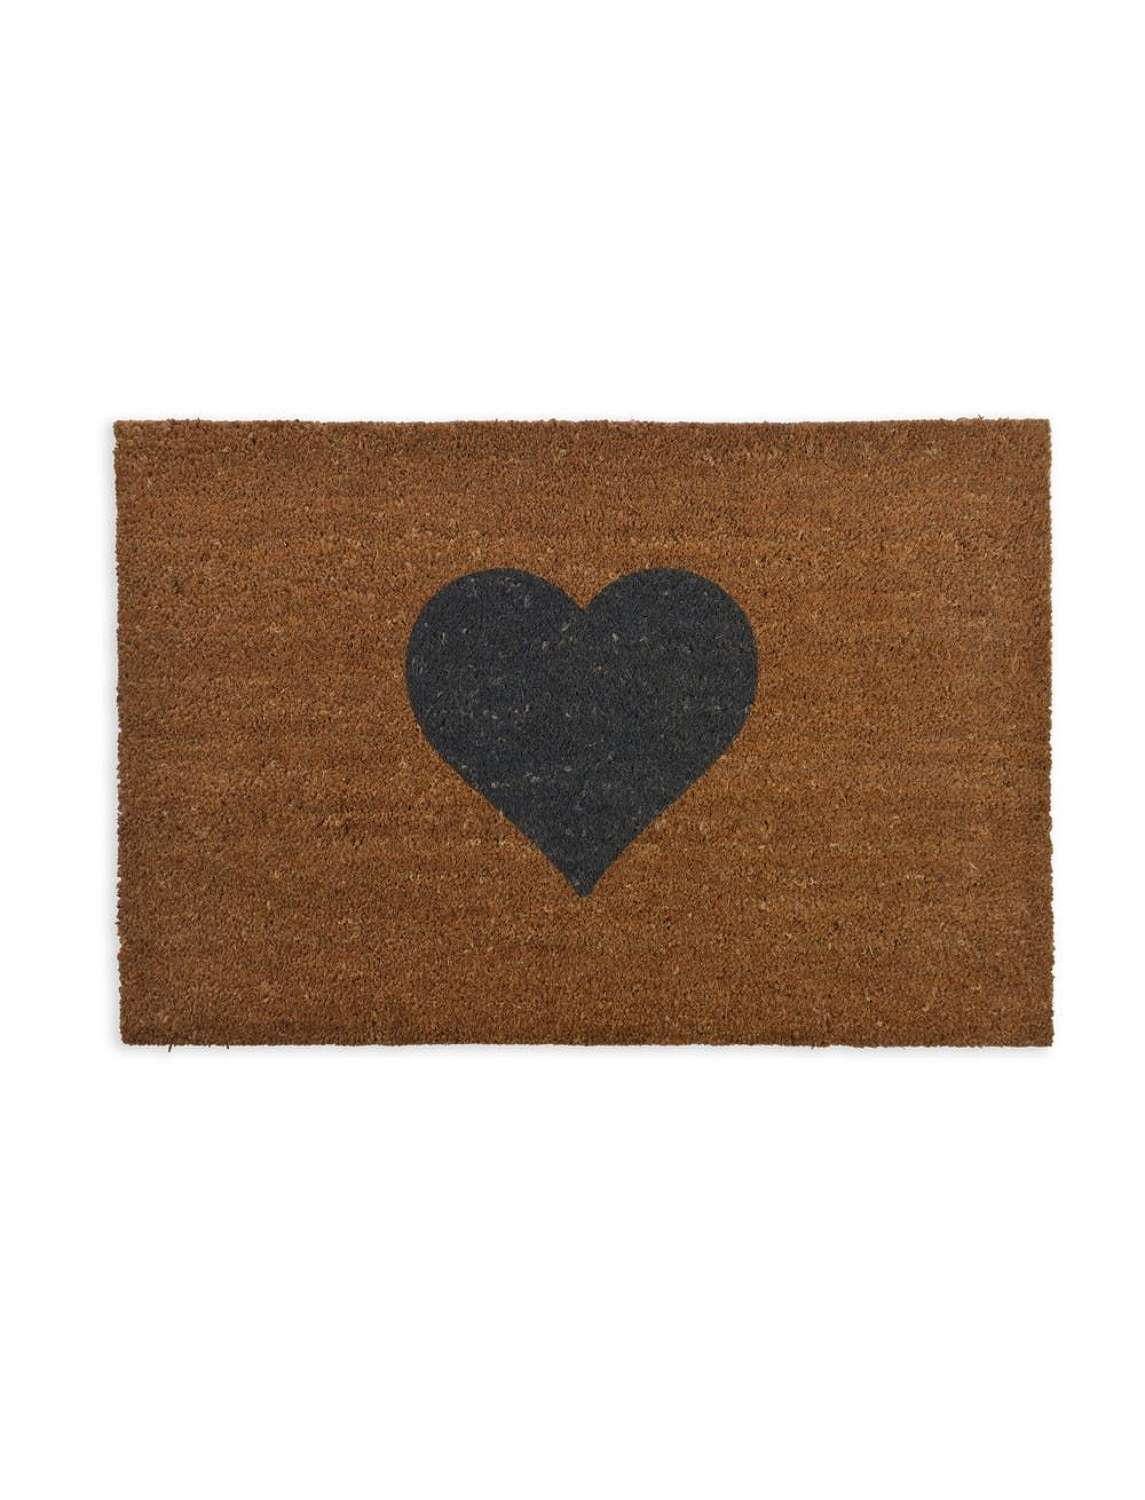 Heart coir doormat  - large and small